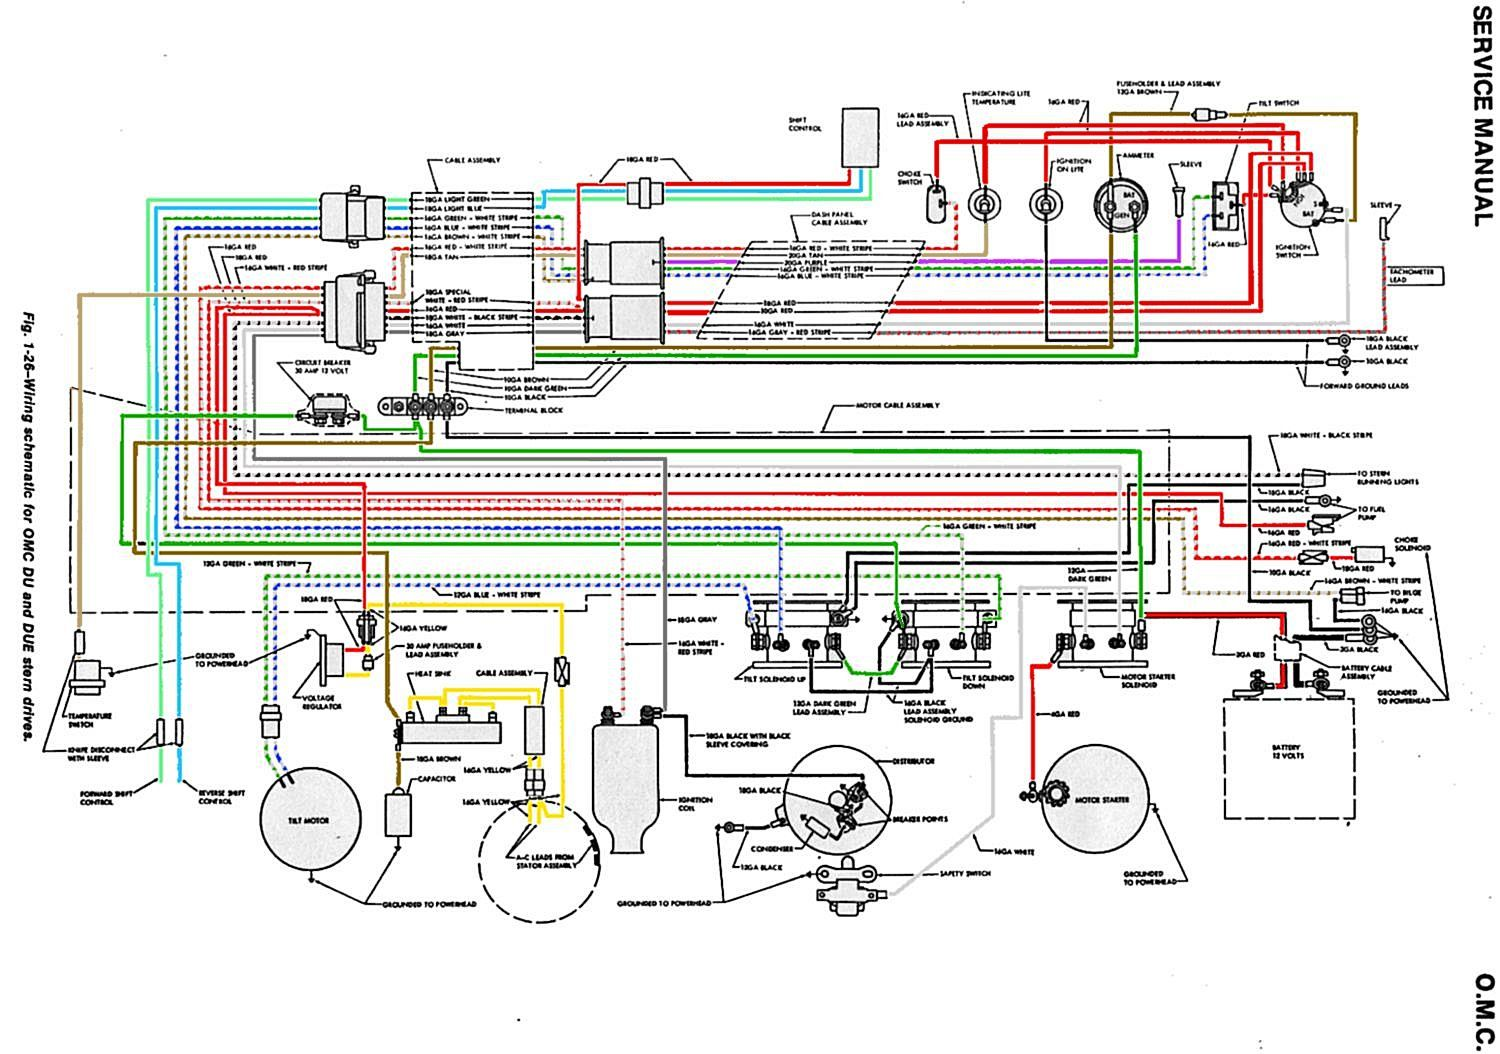 boat motor schematic newmotorspot co boat gas tank schematics yamaha 225 wiring diagram dash panel trusted